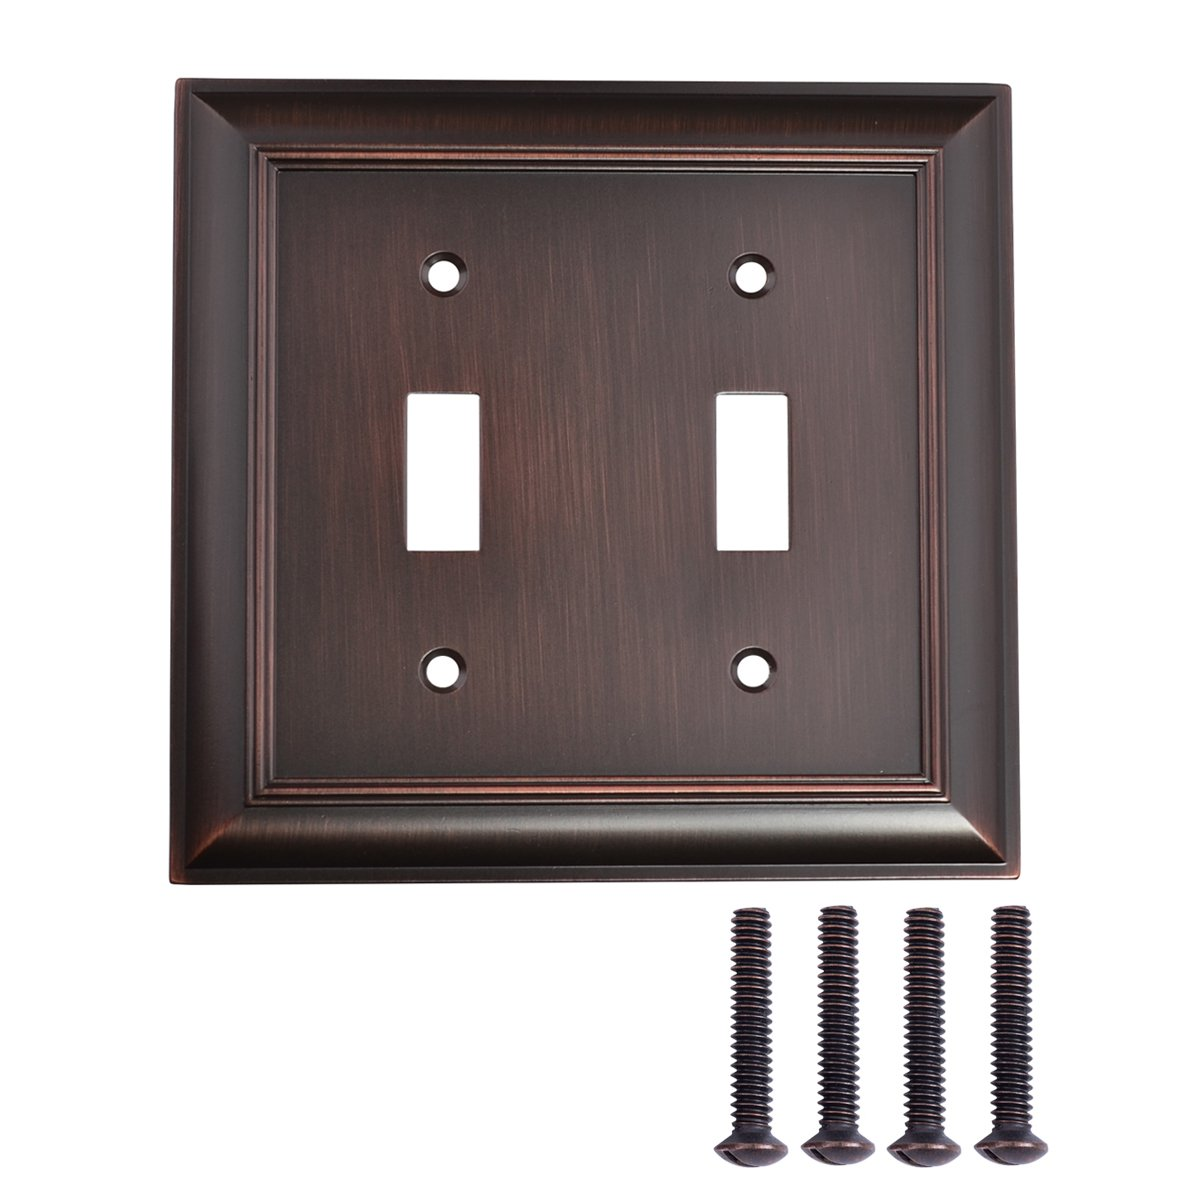 AmazonBasics Double Toggle Light Switch Wall Plate, Oil Rubbed Bronze, Set of 2